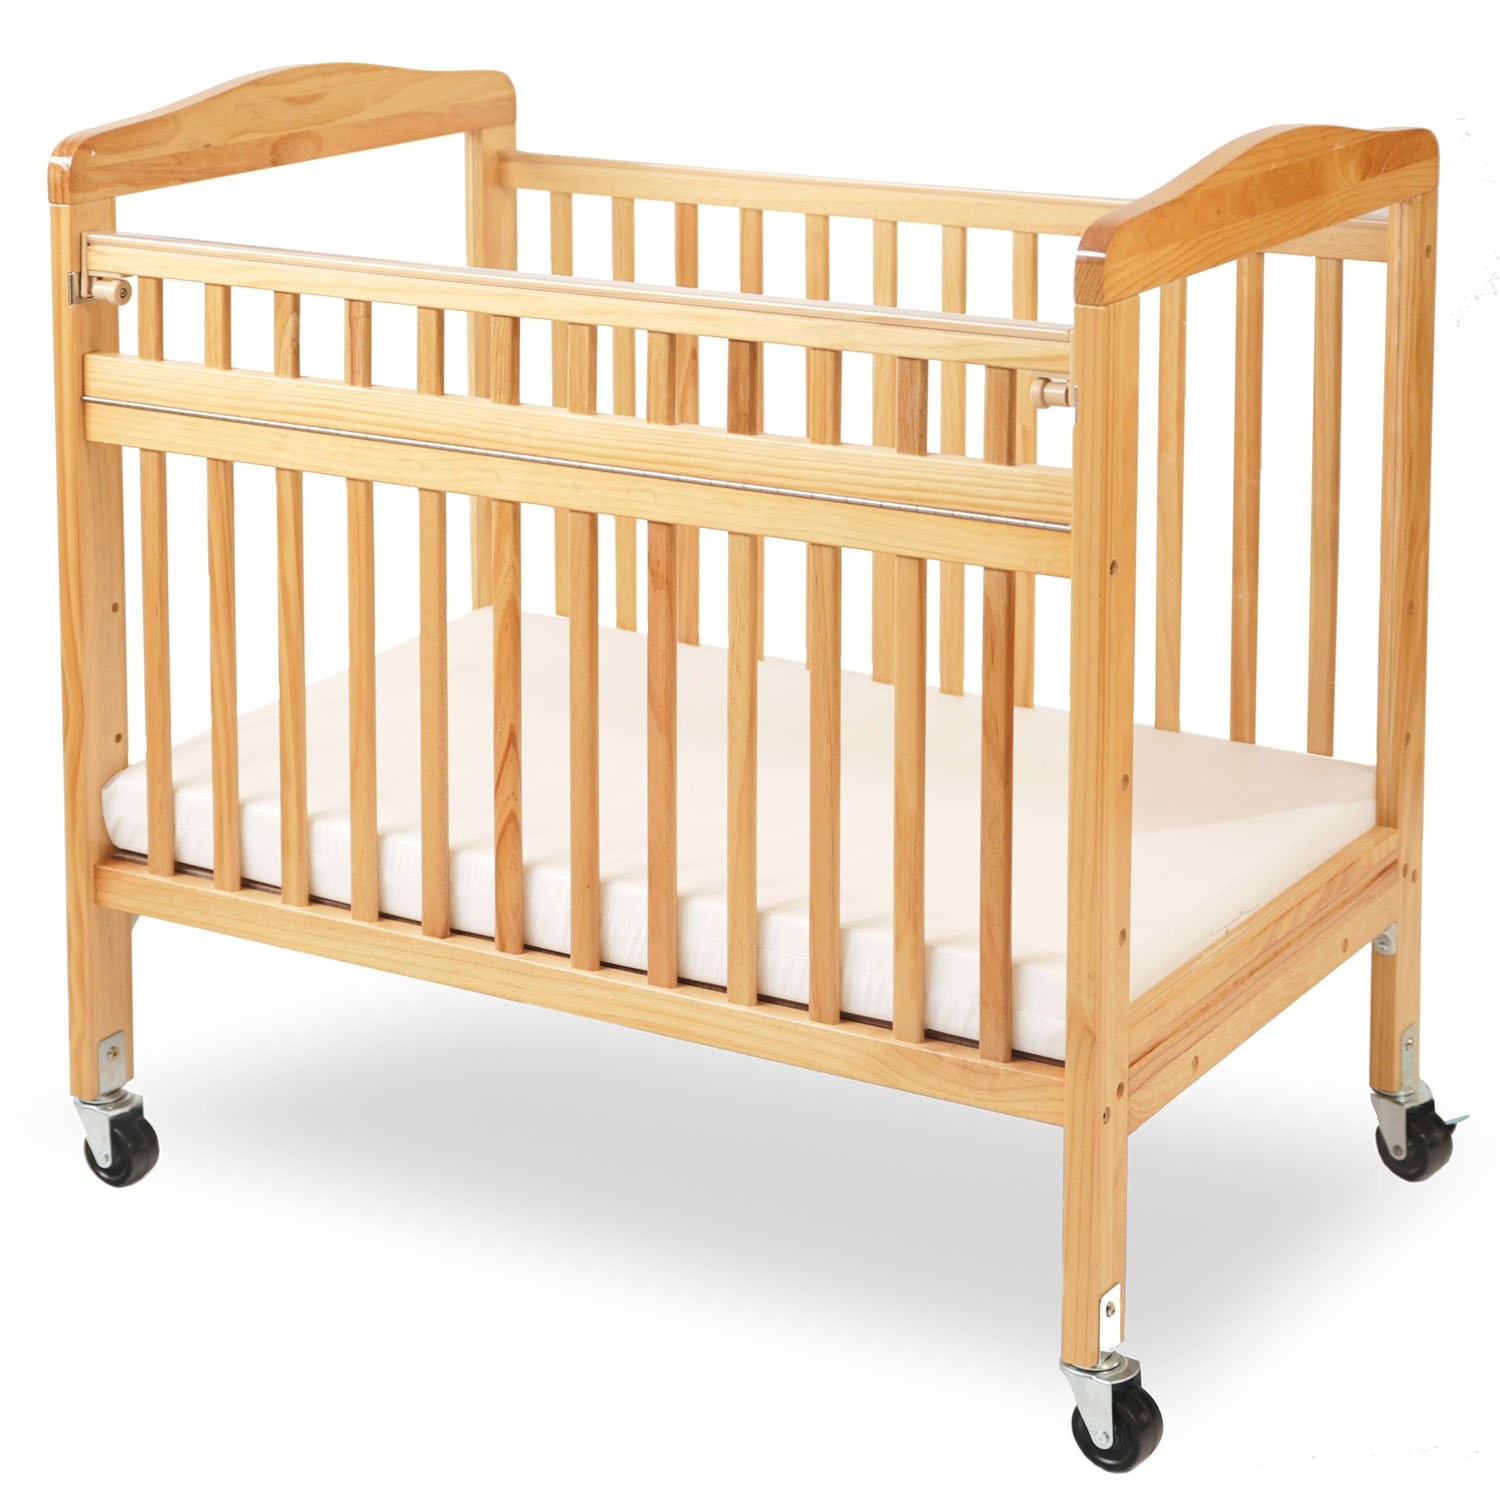 Baby cribs for daycare centers - Amazon Com La Baby Compact Non Folding Wooden Window Crib With Safety Gate Natural Portable Cribs Baby